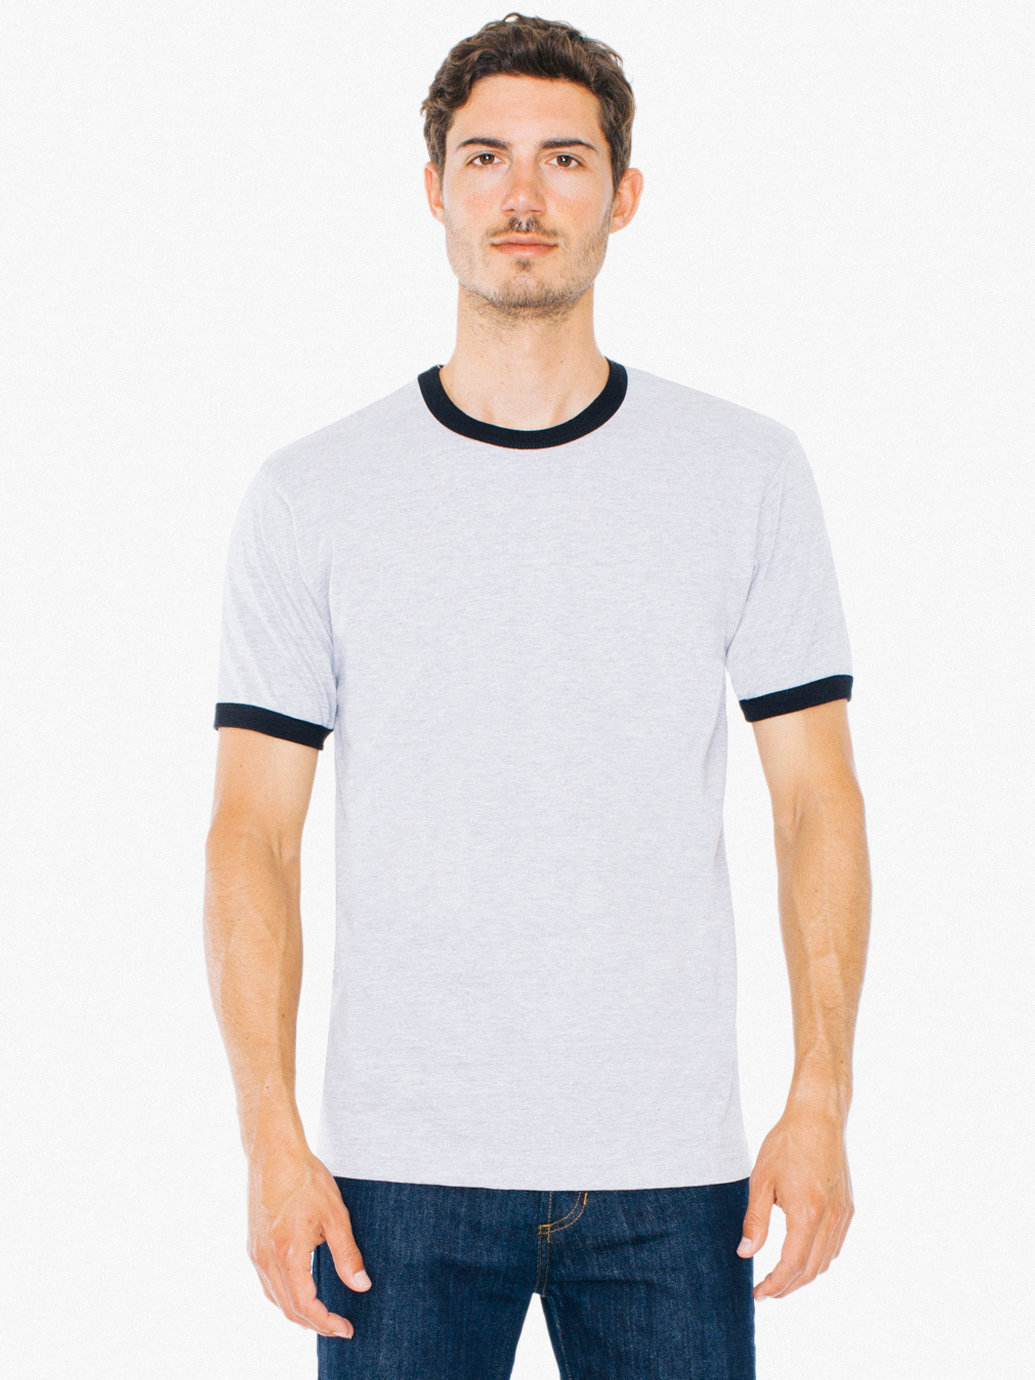 Heather Gray Color Shirt